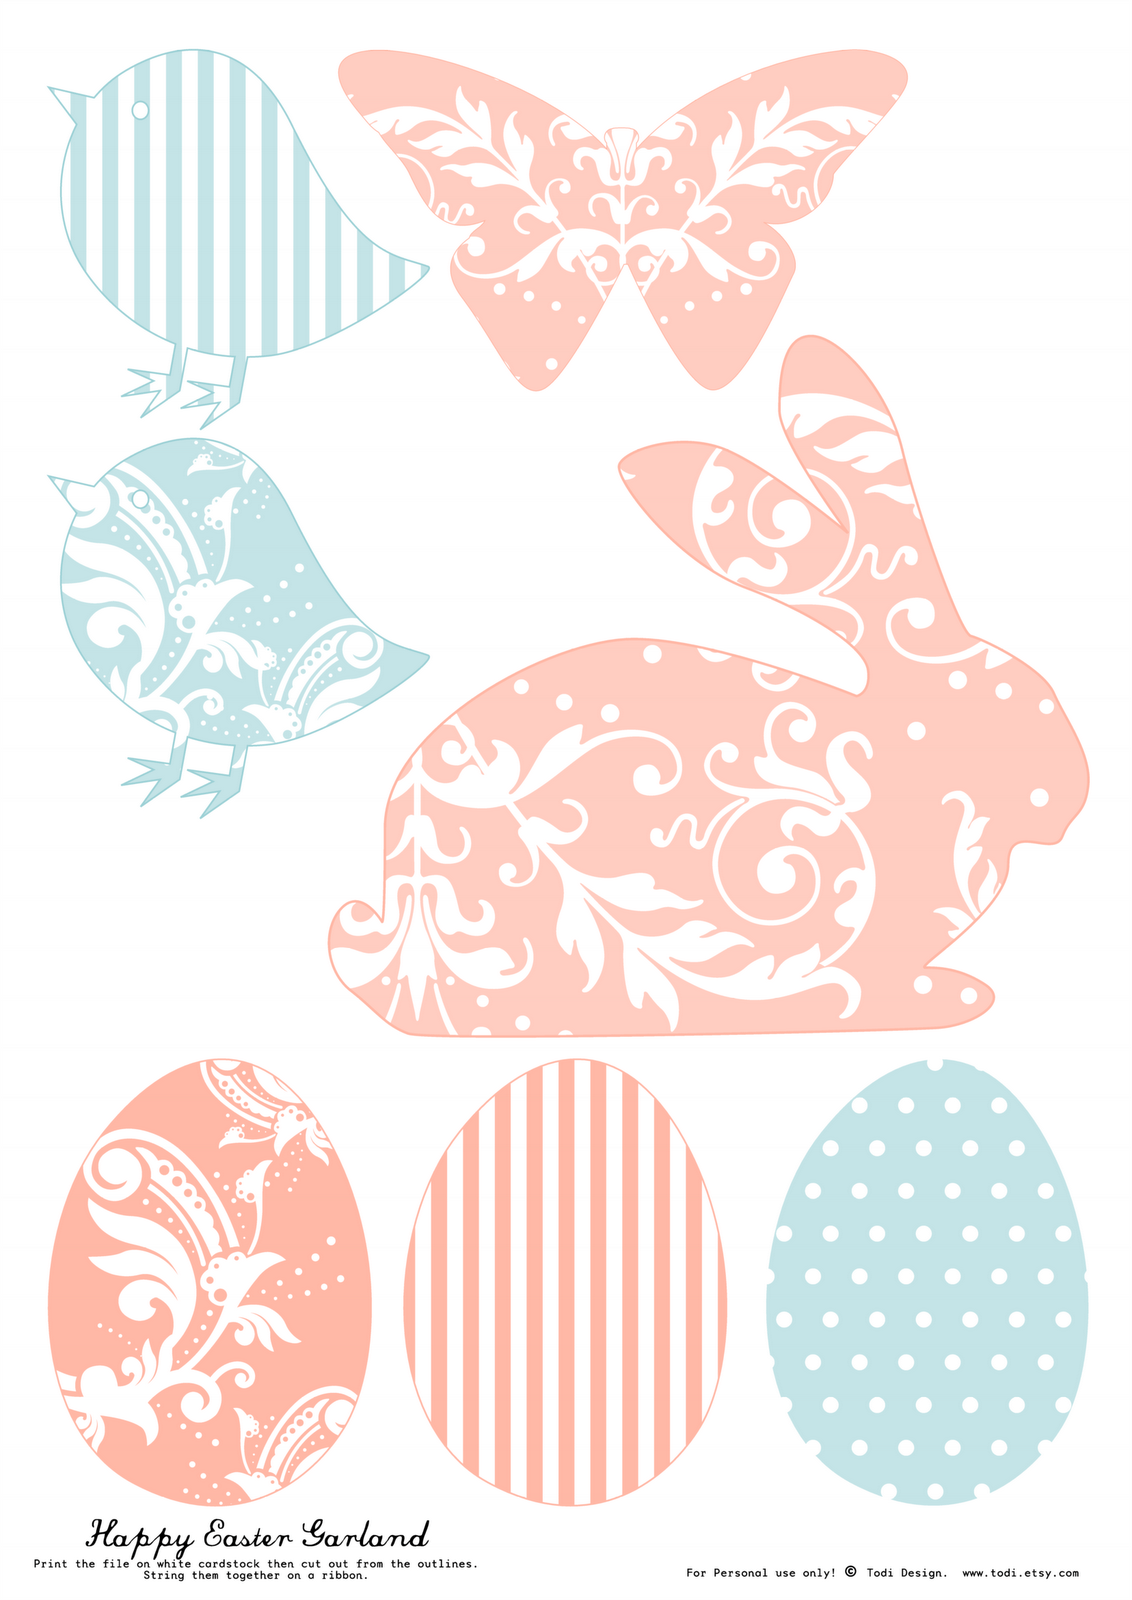 Todi Free Printables For Easter Decoration Th Print Used For This Rabbit Silhouette Is Darling